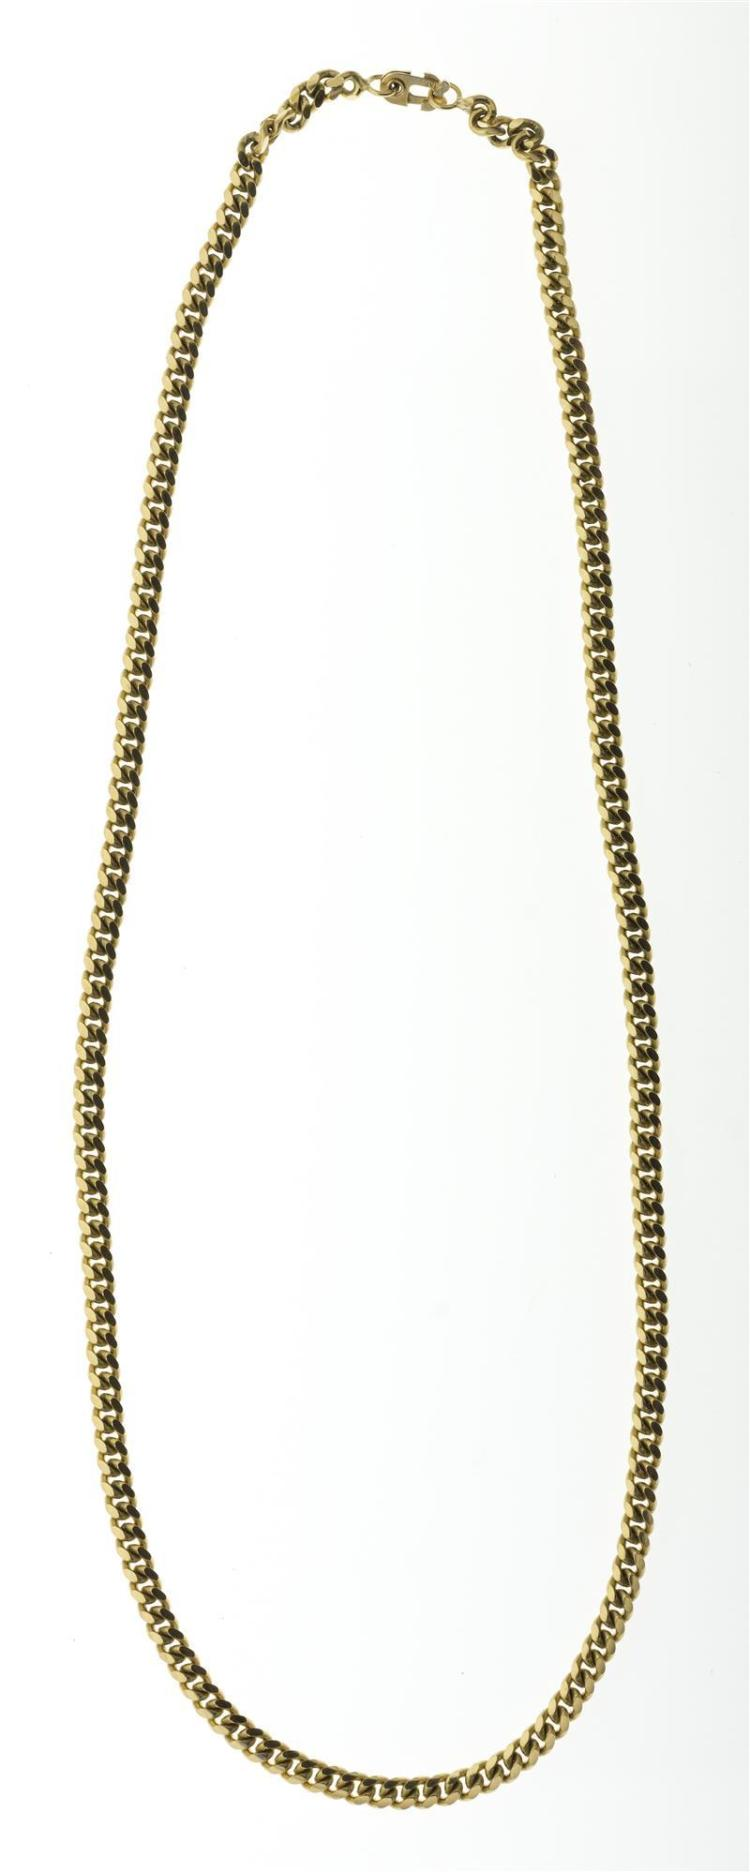 14KT YELLOW GOLD CHAIN NECKLACE Stamped